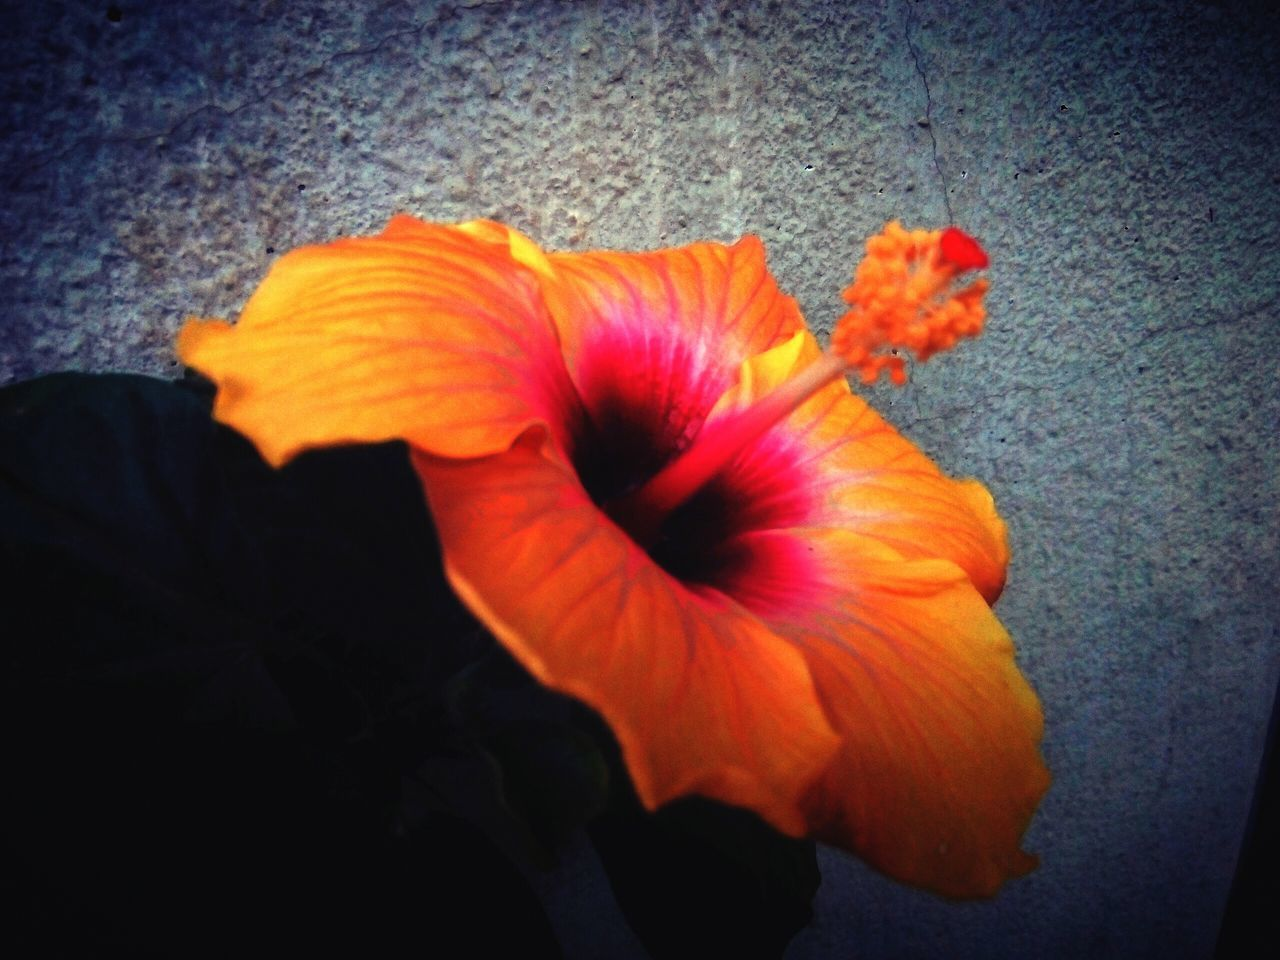 flower, petal, flower head, fragility, beauty in nature, orange color, freshness, nature, vignette, blooming, plant, growth, no people, close-up, hibiscus, day, outdoors